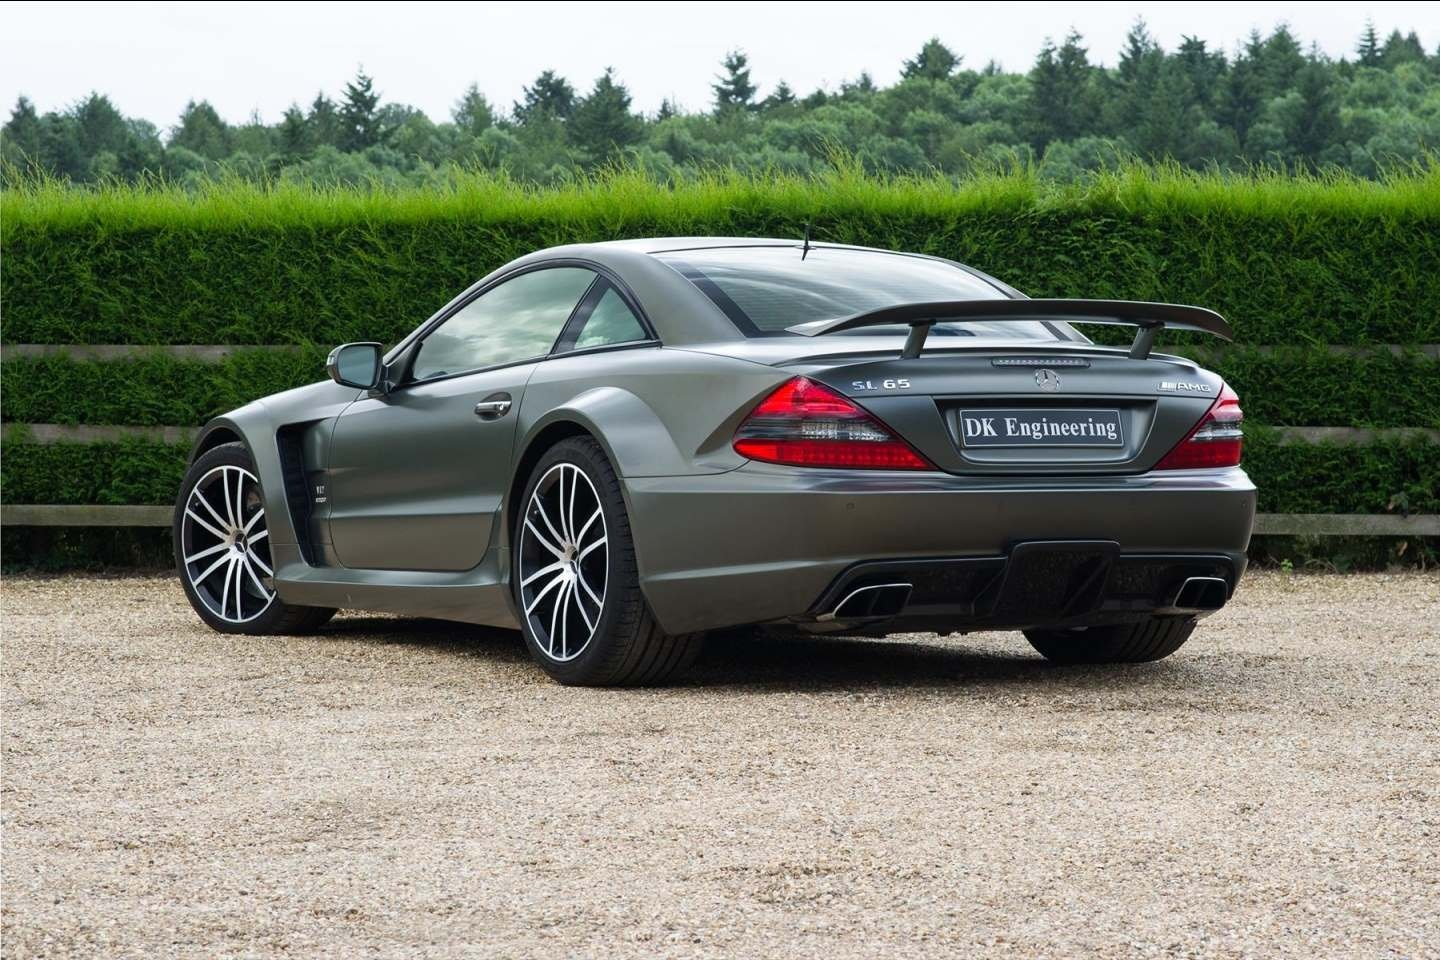 Mercedes benz sl65 amg black series for sale for Mercedes benz sl65 amg black series price